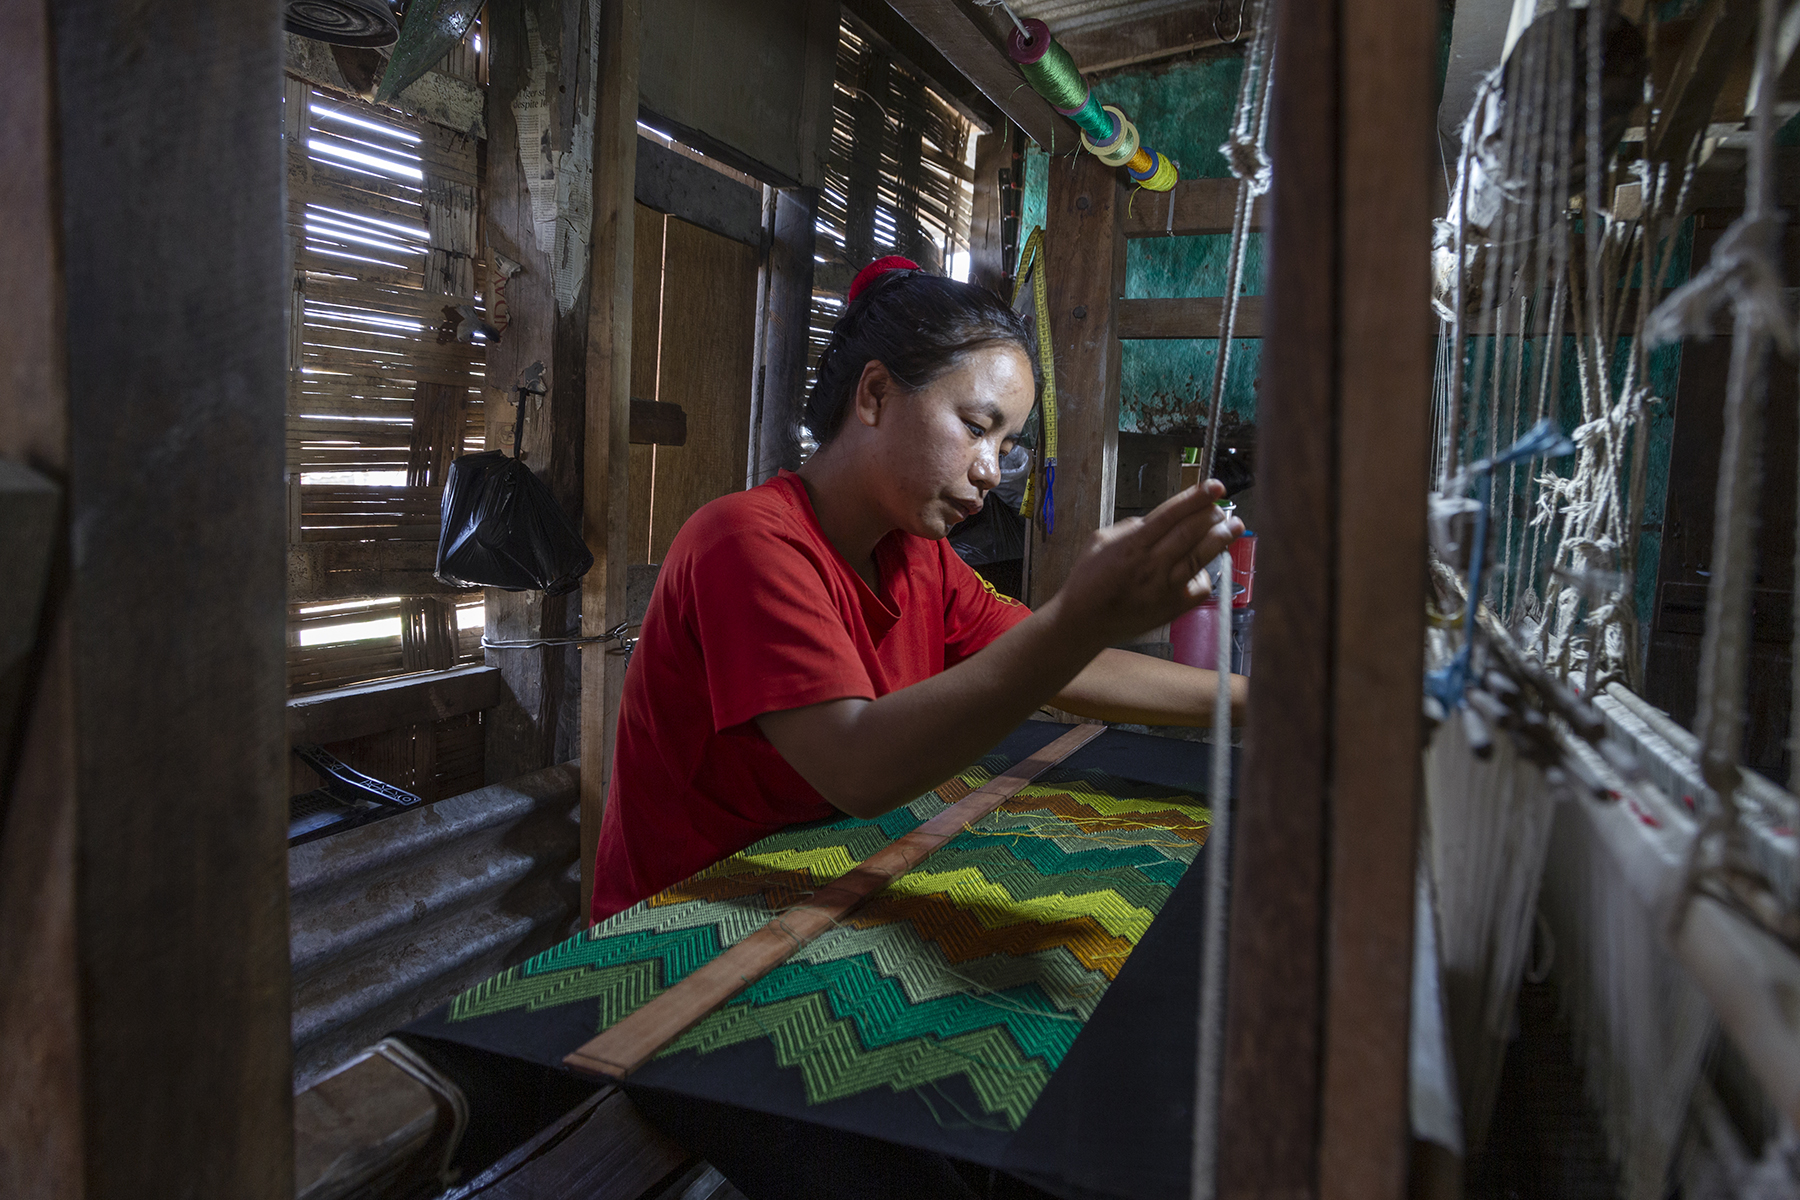 Side shot of Ngaihnem in a red T-shirt, standing in a narrow space, weaving on a loom. The fabric before her has a zigzag pattern of alternating bands of yellow, orange, and three shades of green. Her left hand is outstretched and right hand is raised to hold a vertical, thick, white cord.